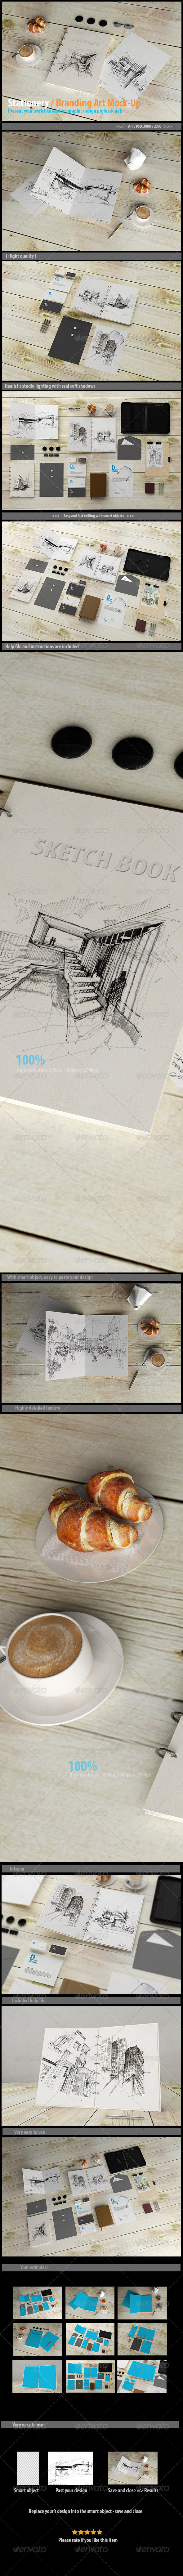 GraphicRiver Stationery Branding Art Mock-Up 8349290